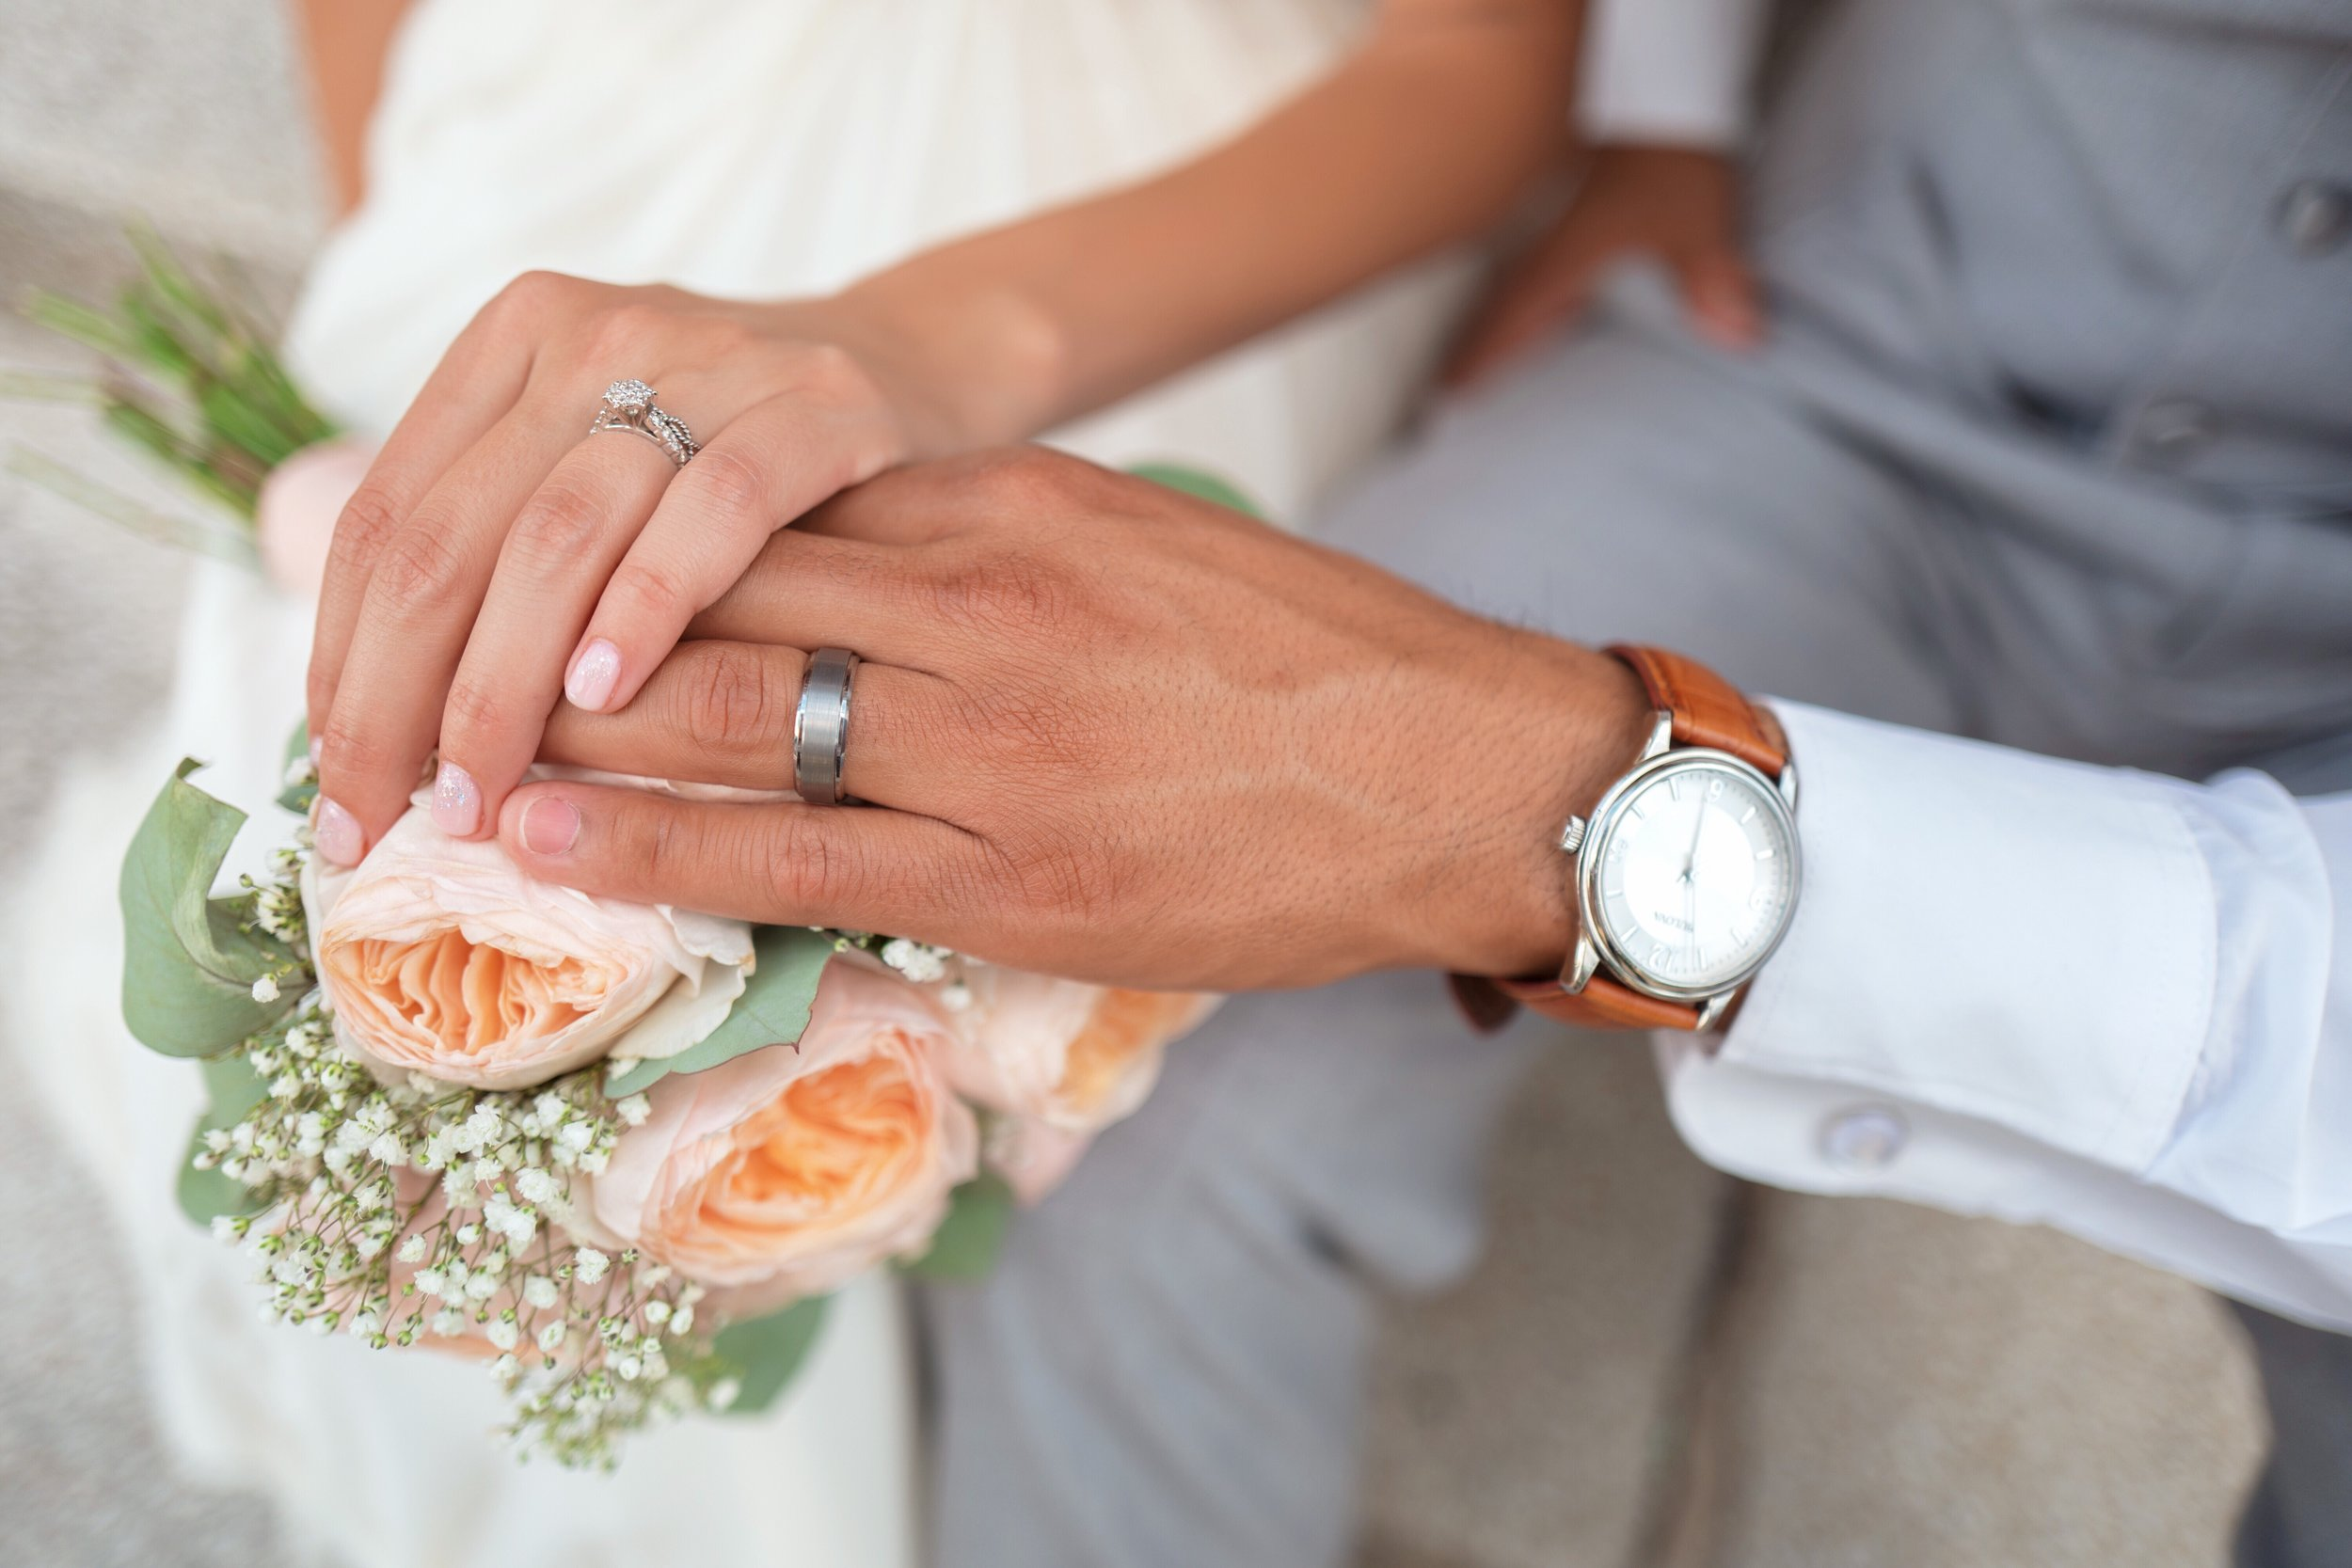 Wedding Ring - The average couple spends is $5,355 for the bride and groom. We can help relieve these expenses